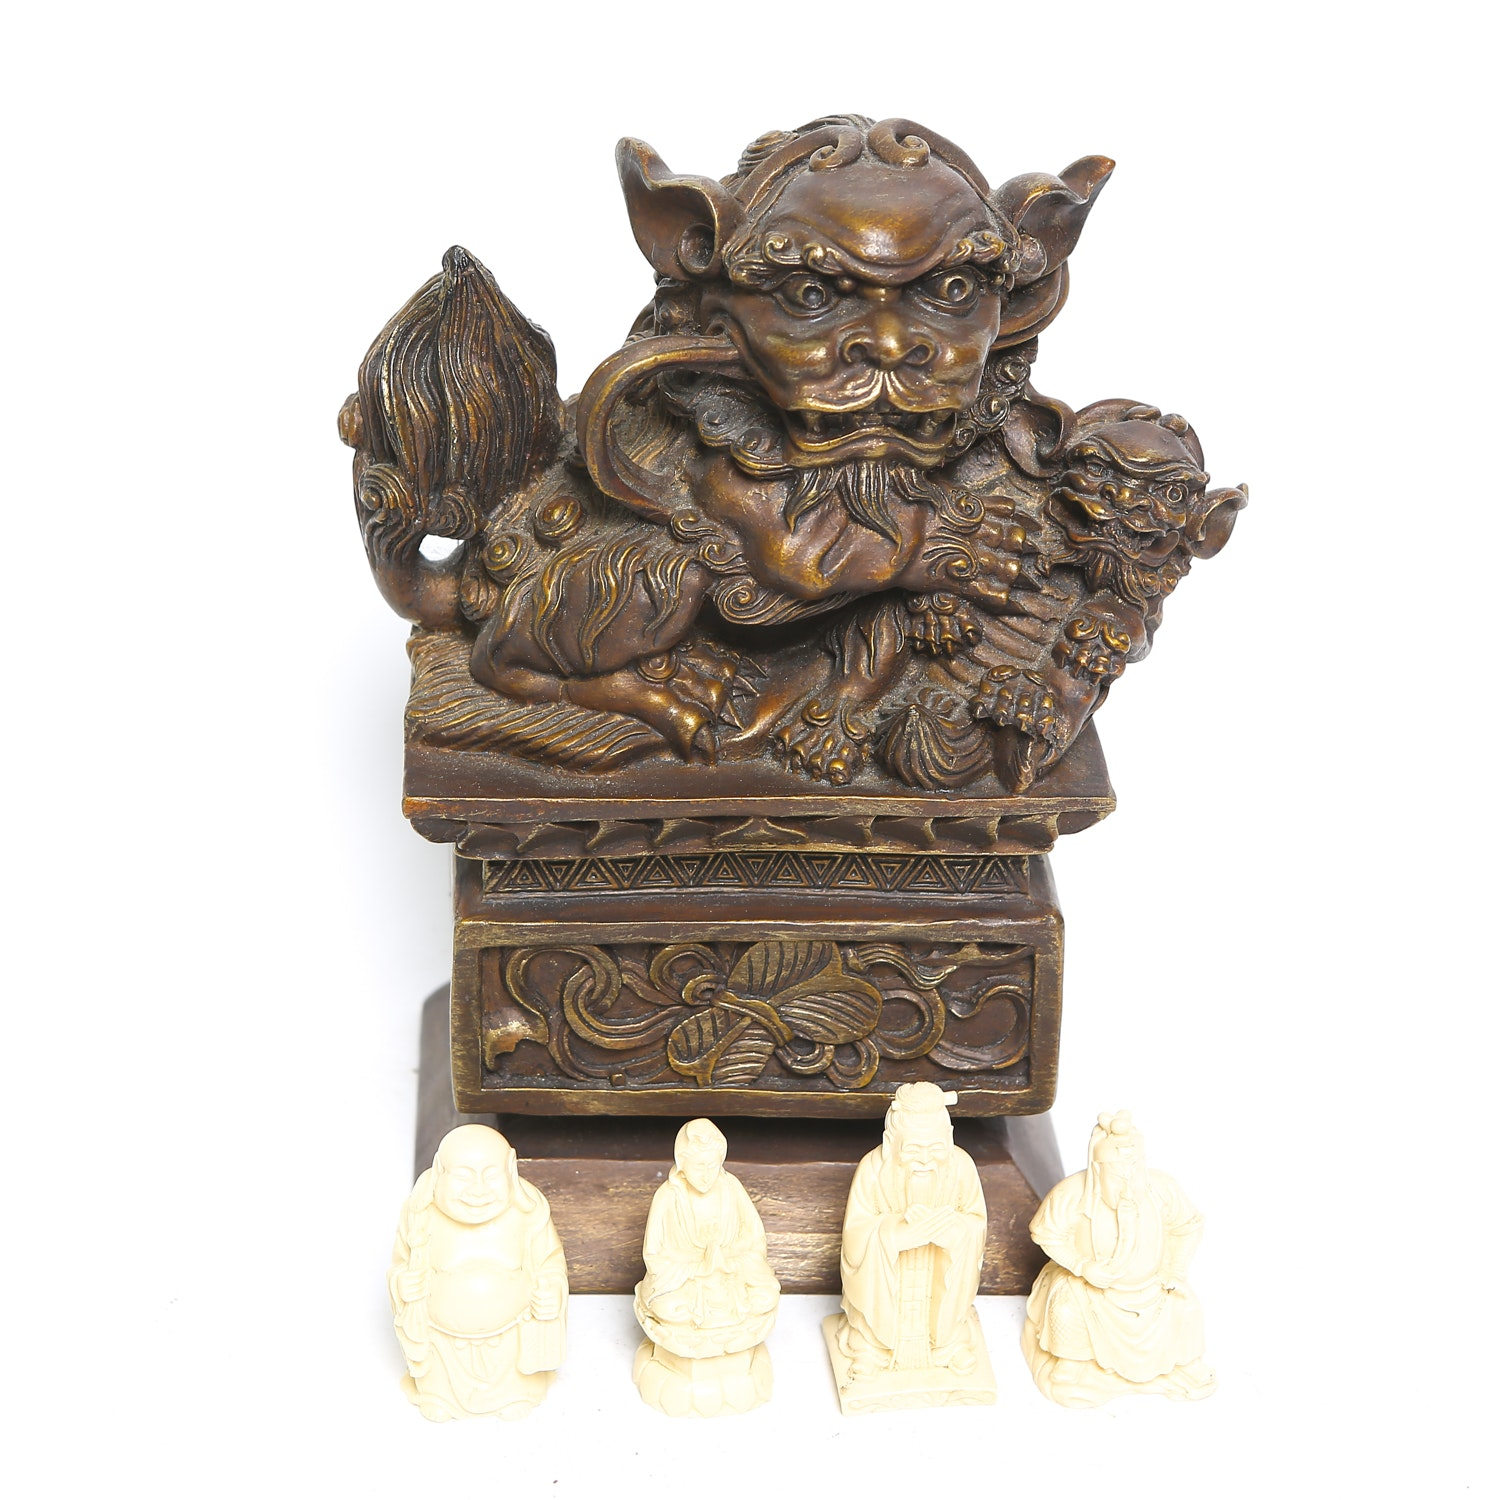 Faux Ivory Figurines and Large Guardian Lion